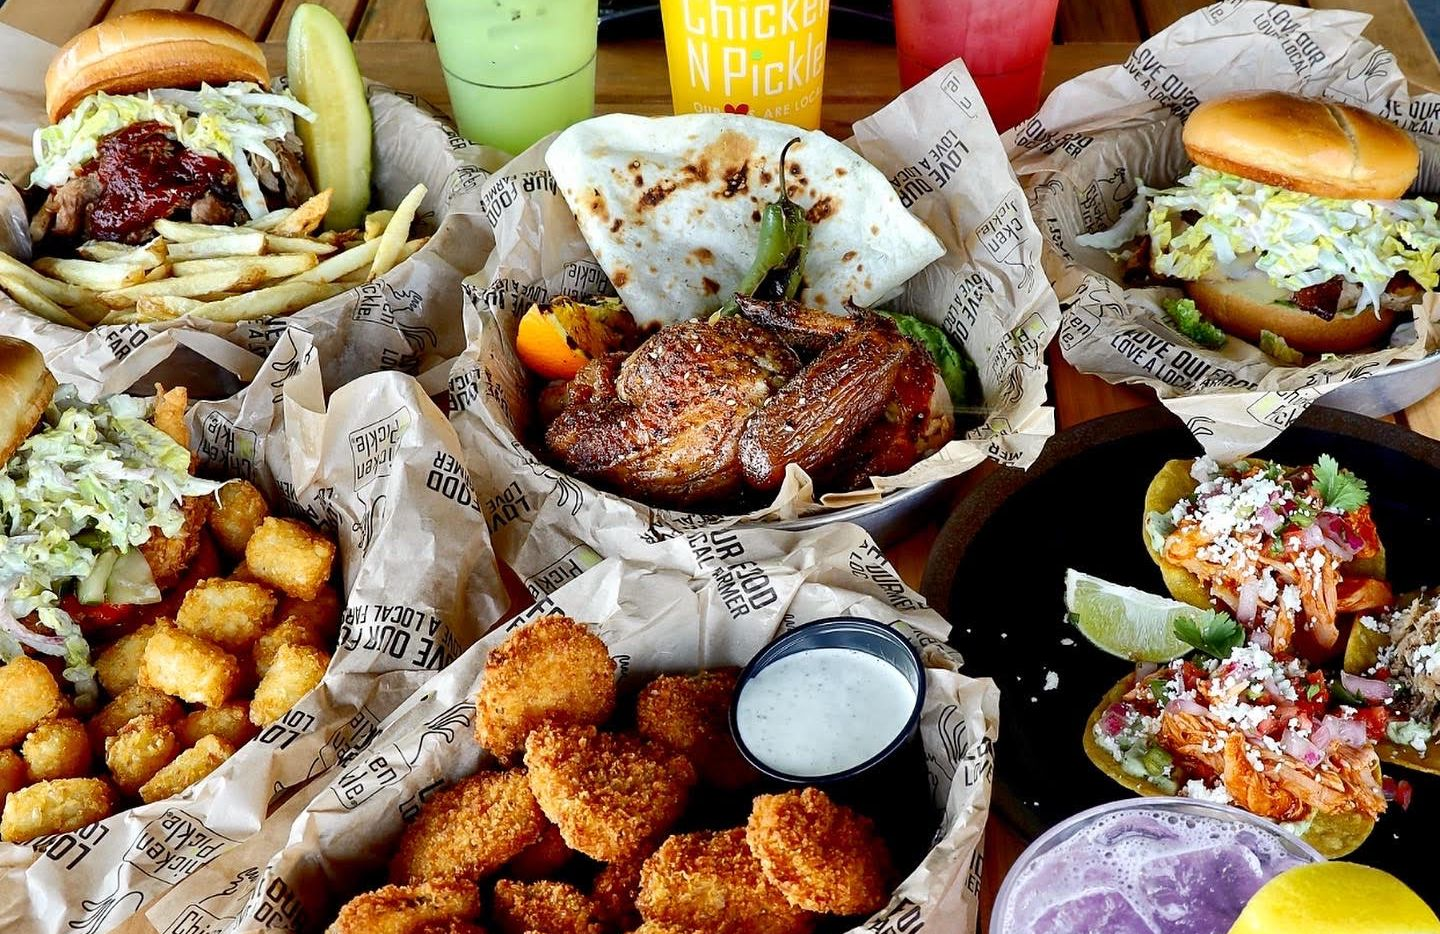 Chicken N Pickle is planning to open a location in Grapevine that will have indoor and outdoor dining and areas for shuffleboard, bocce and other lawn games.